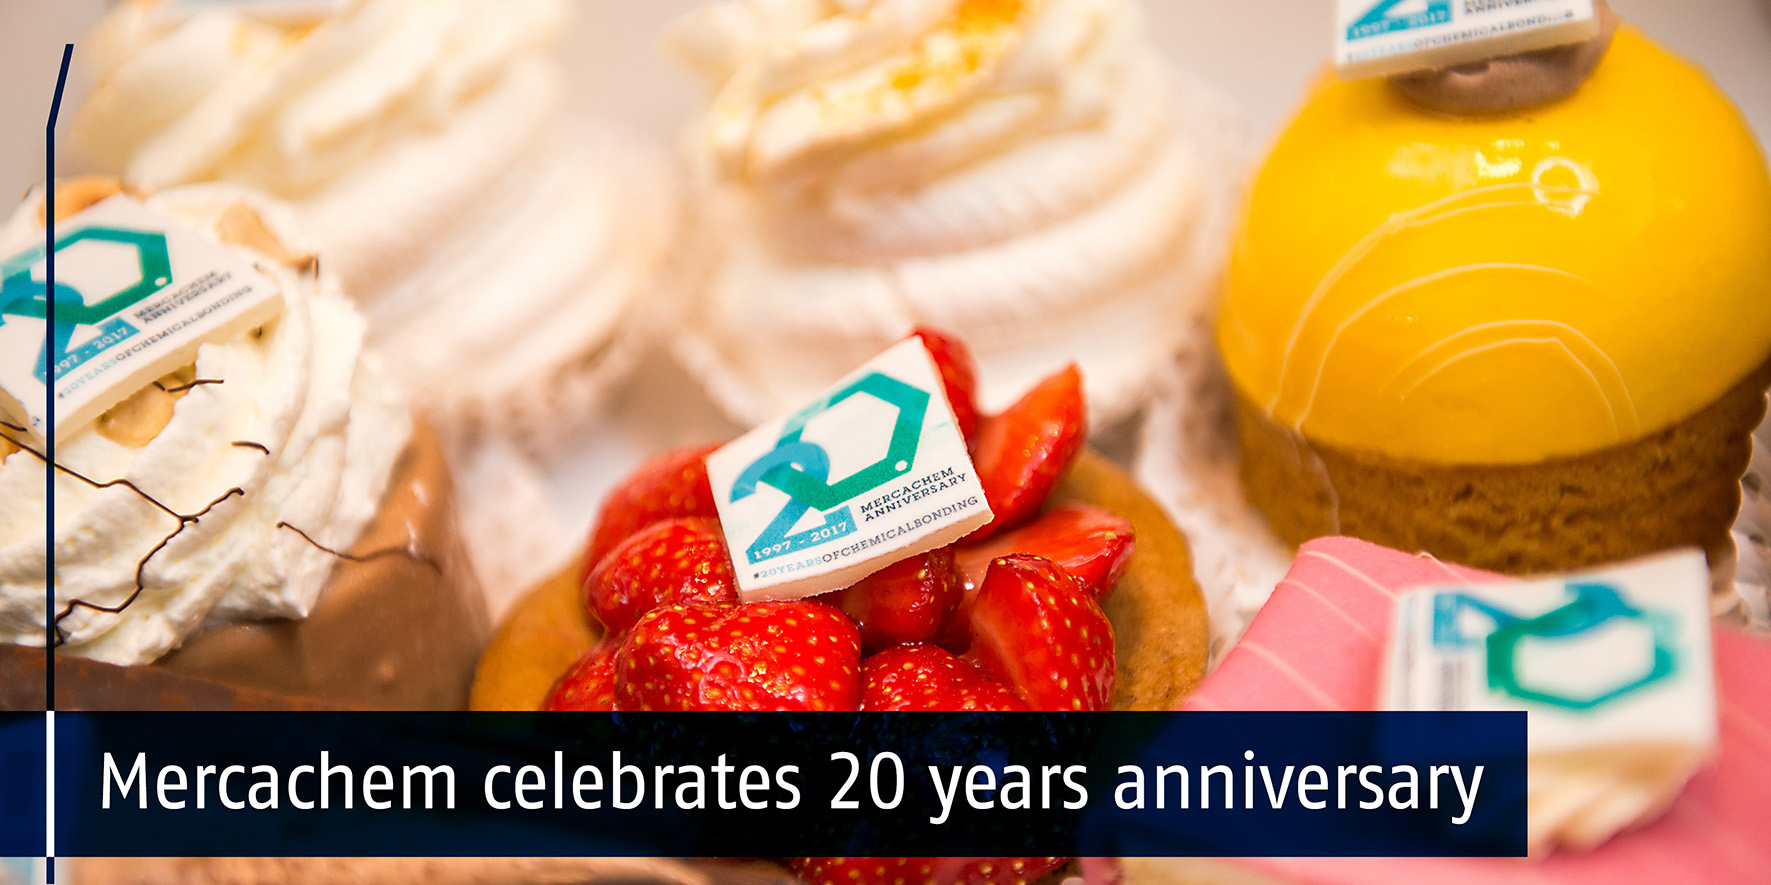 Mercachem celebrates 20 years anniversary